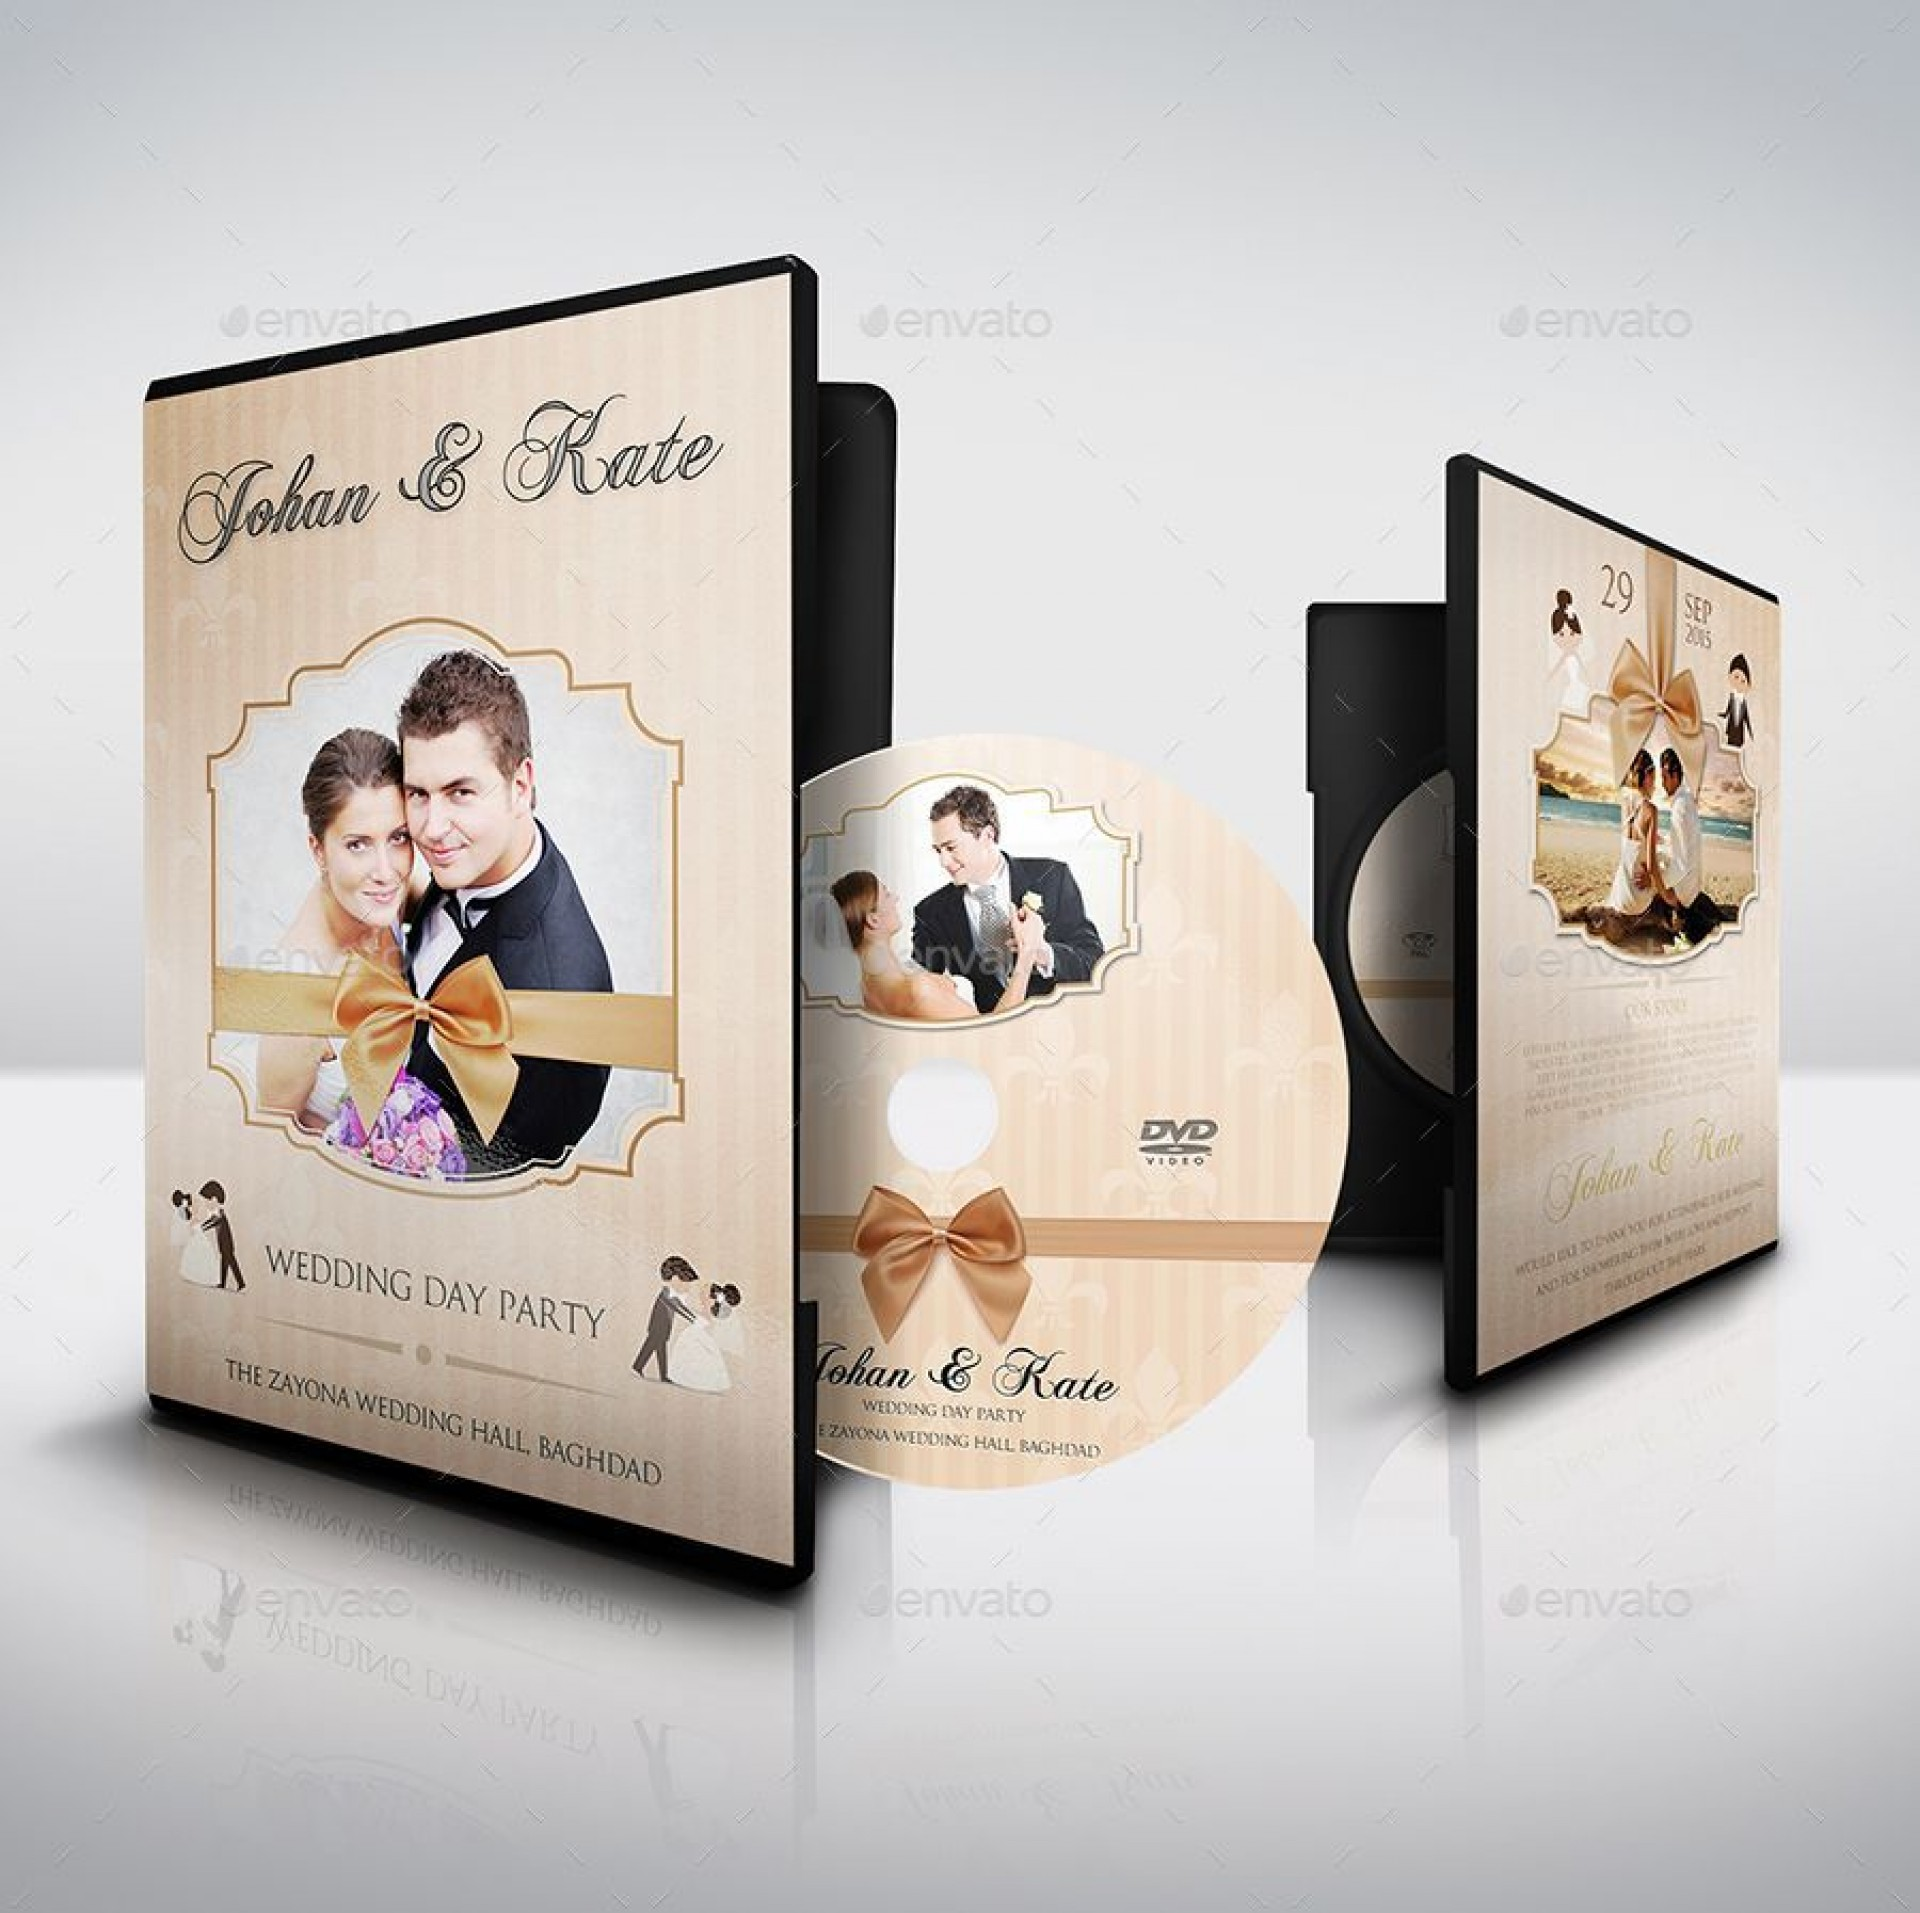 007 Stunning Wedding Cd Cover Design Template Free Download Picture 1920